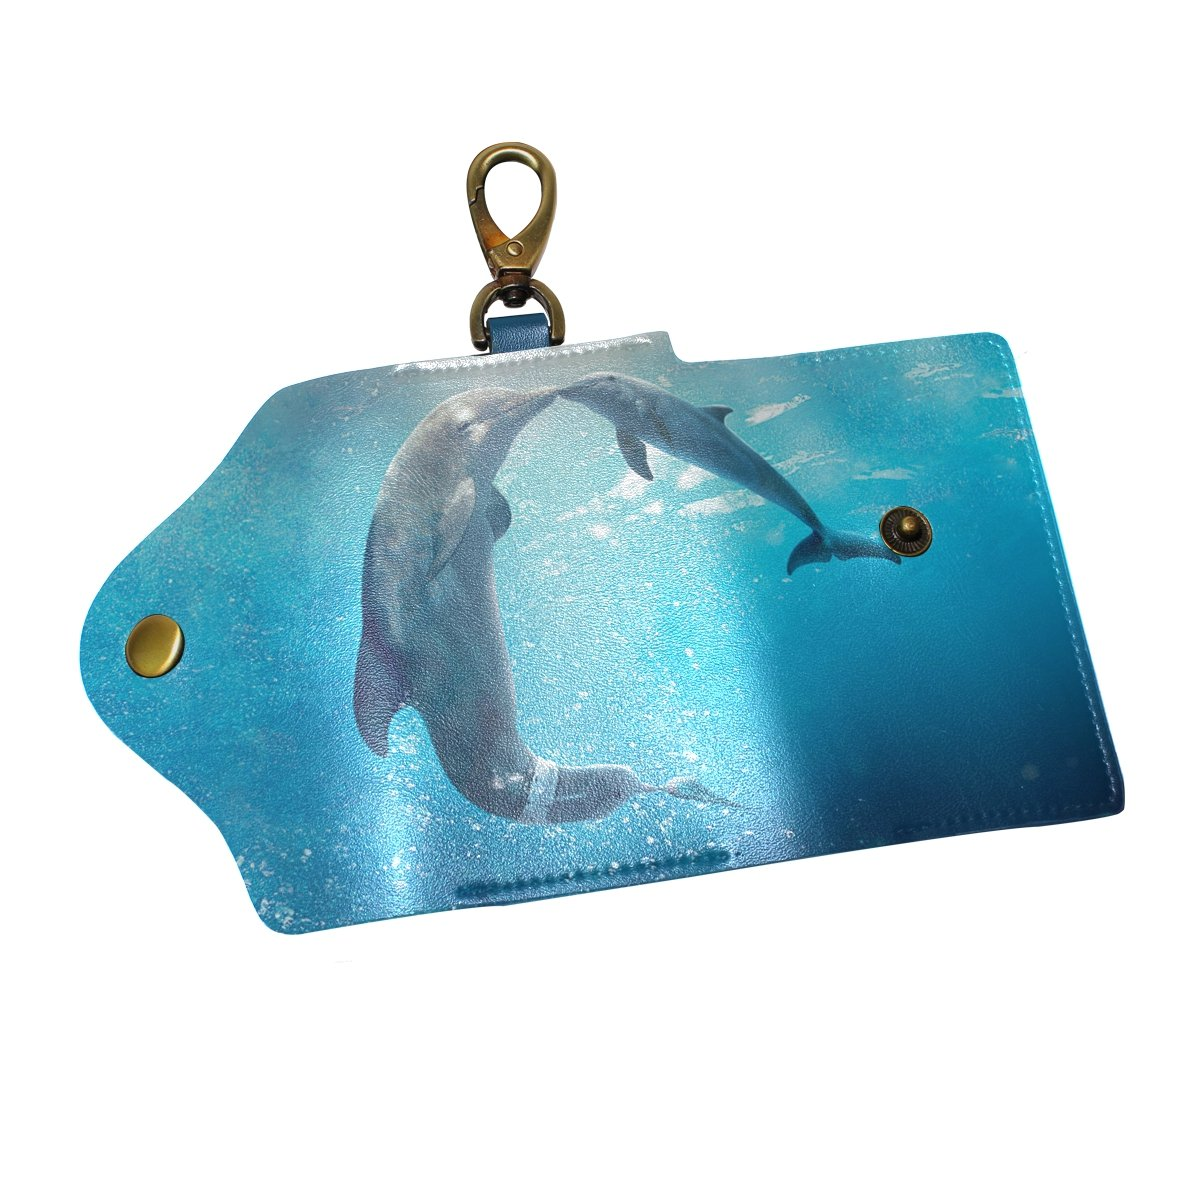 KEAKIA Love Dolphins Leather Key Case Wallets Tri-fold Key Holder Keychains with 6 Hooks 2 Slot Snap Closure for Men Women